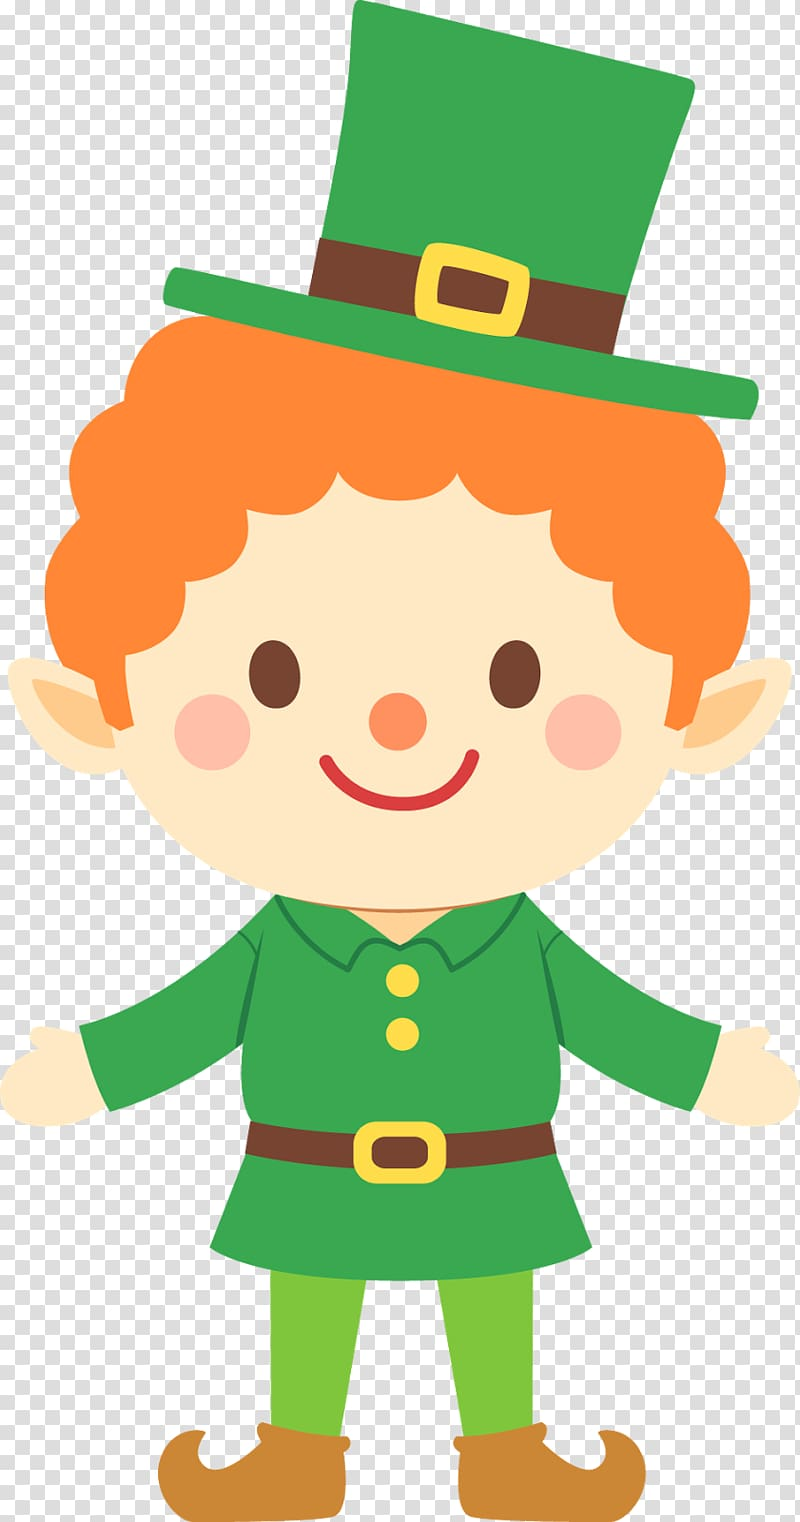 Leprechaun clipart for kids graphic black and white library Leprechaun Saint Patricks Day , March transparent background PNG ... graphic black and white library